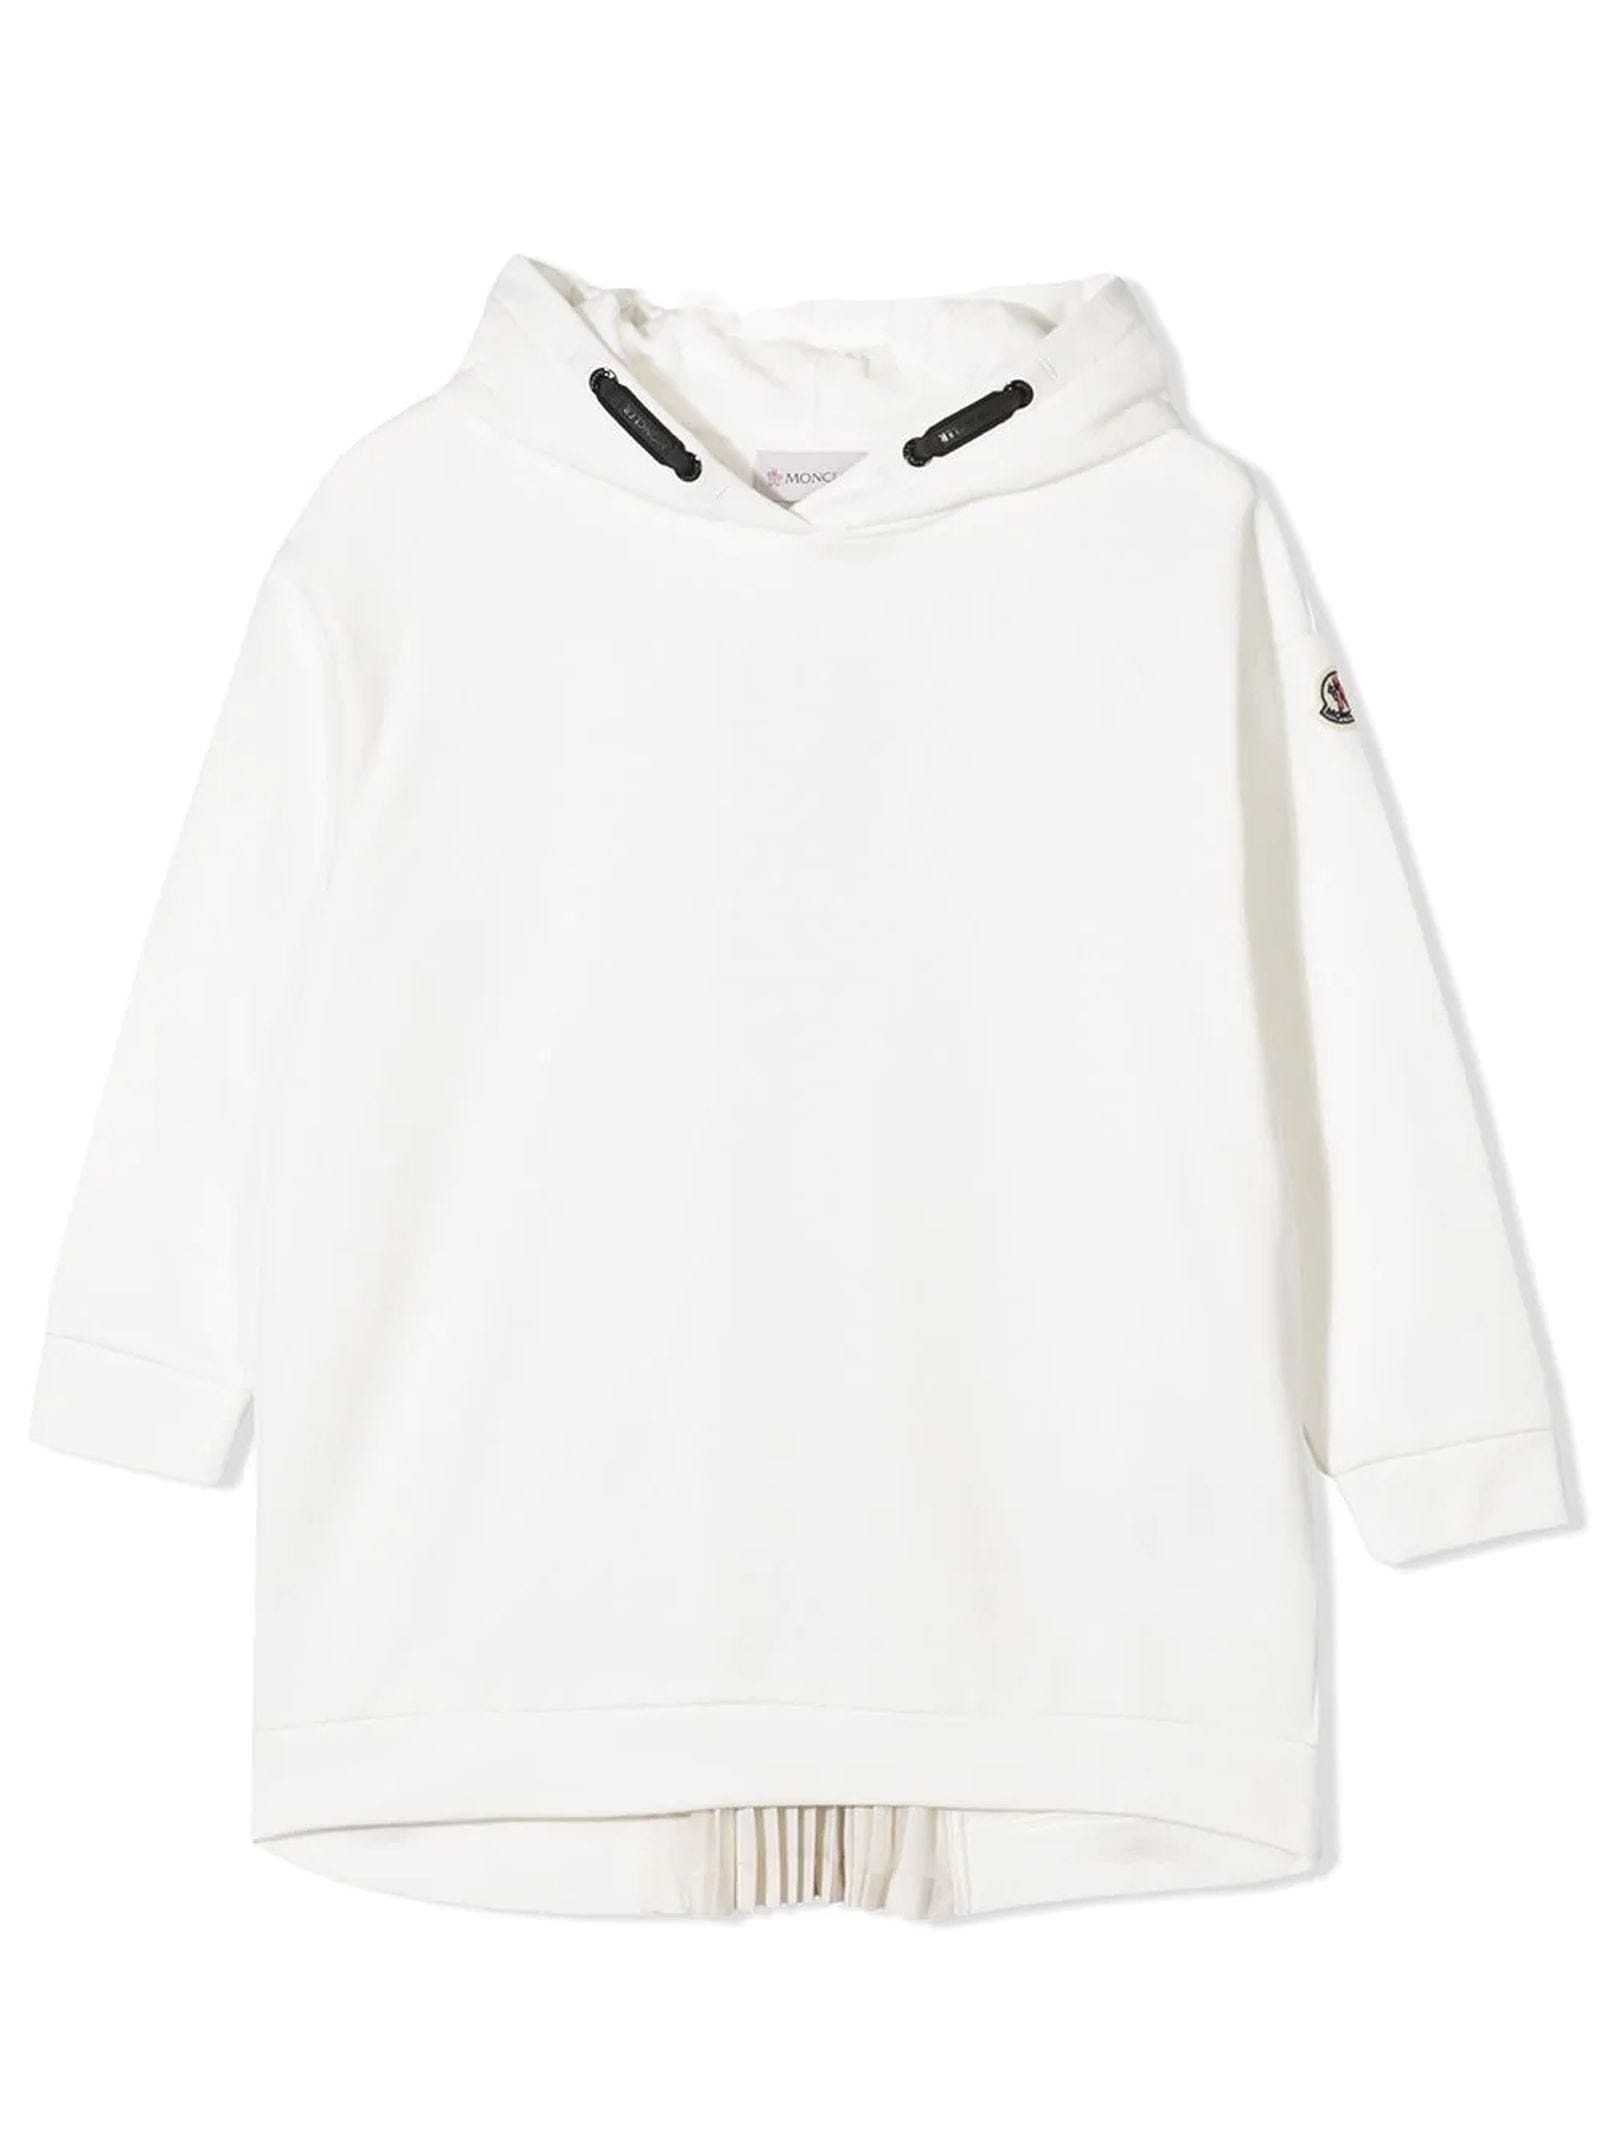 Buy Moncler White Cotton Sweatshirt Dress online, shop Moncler with free shipping